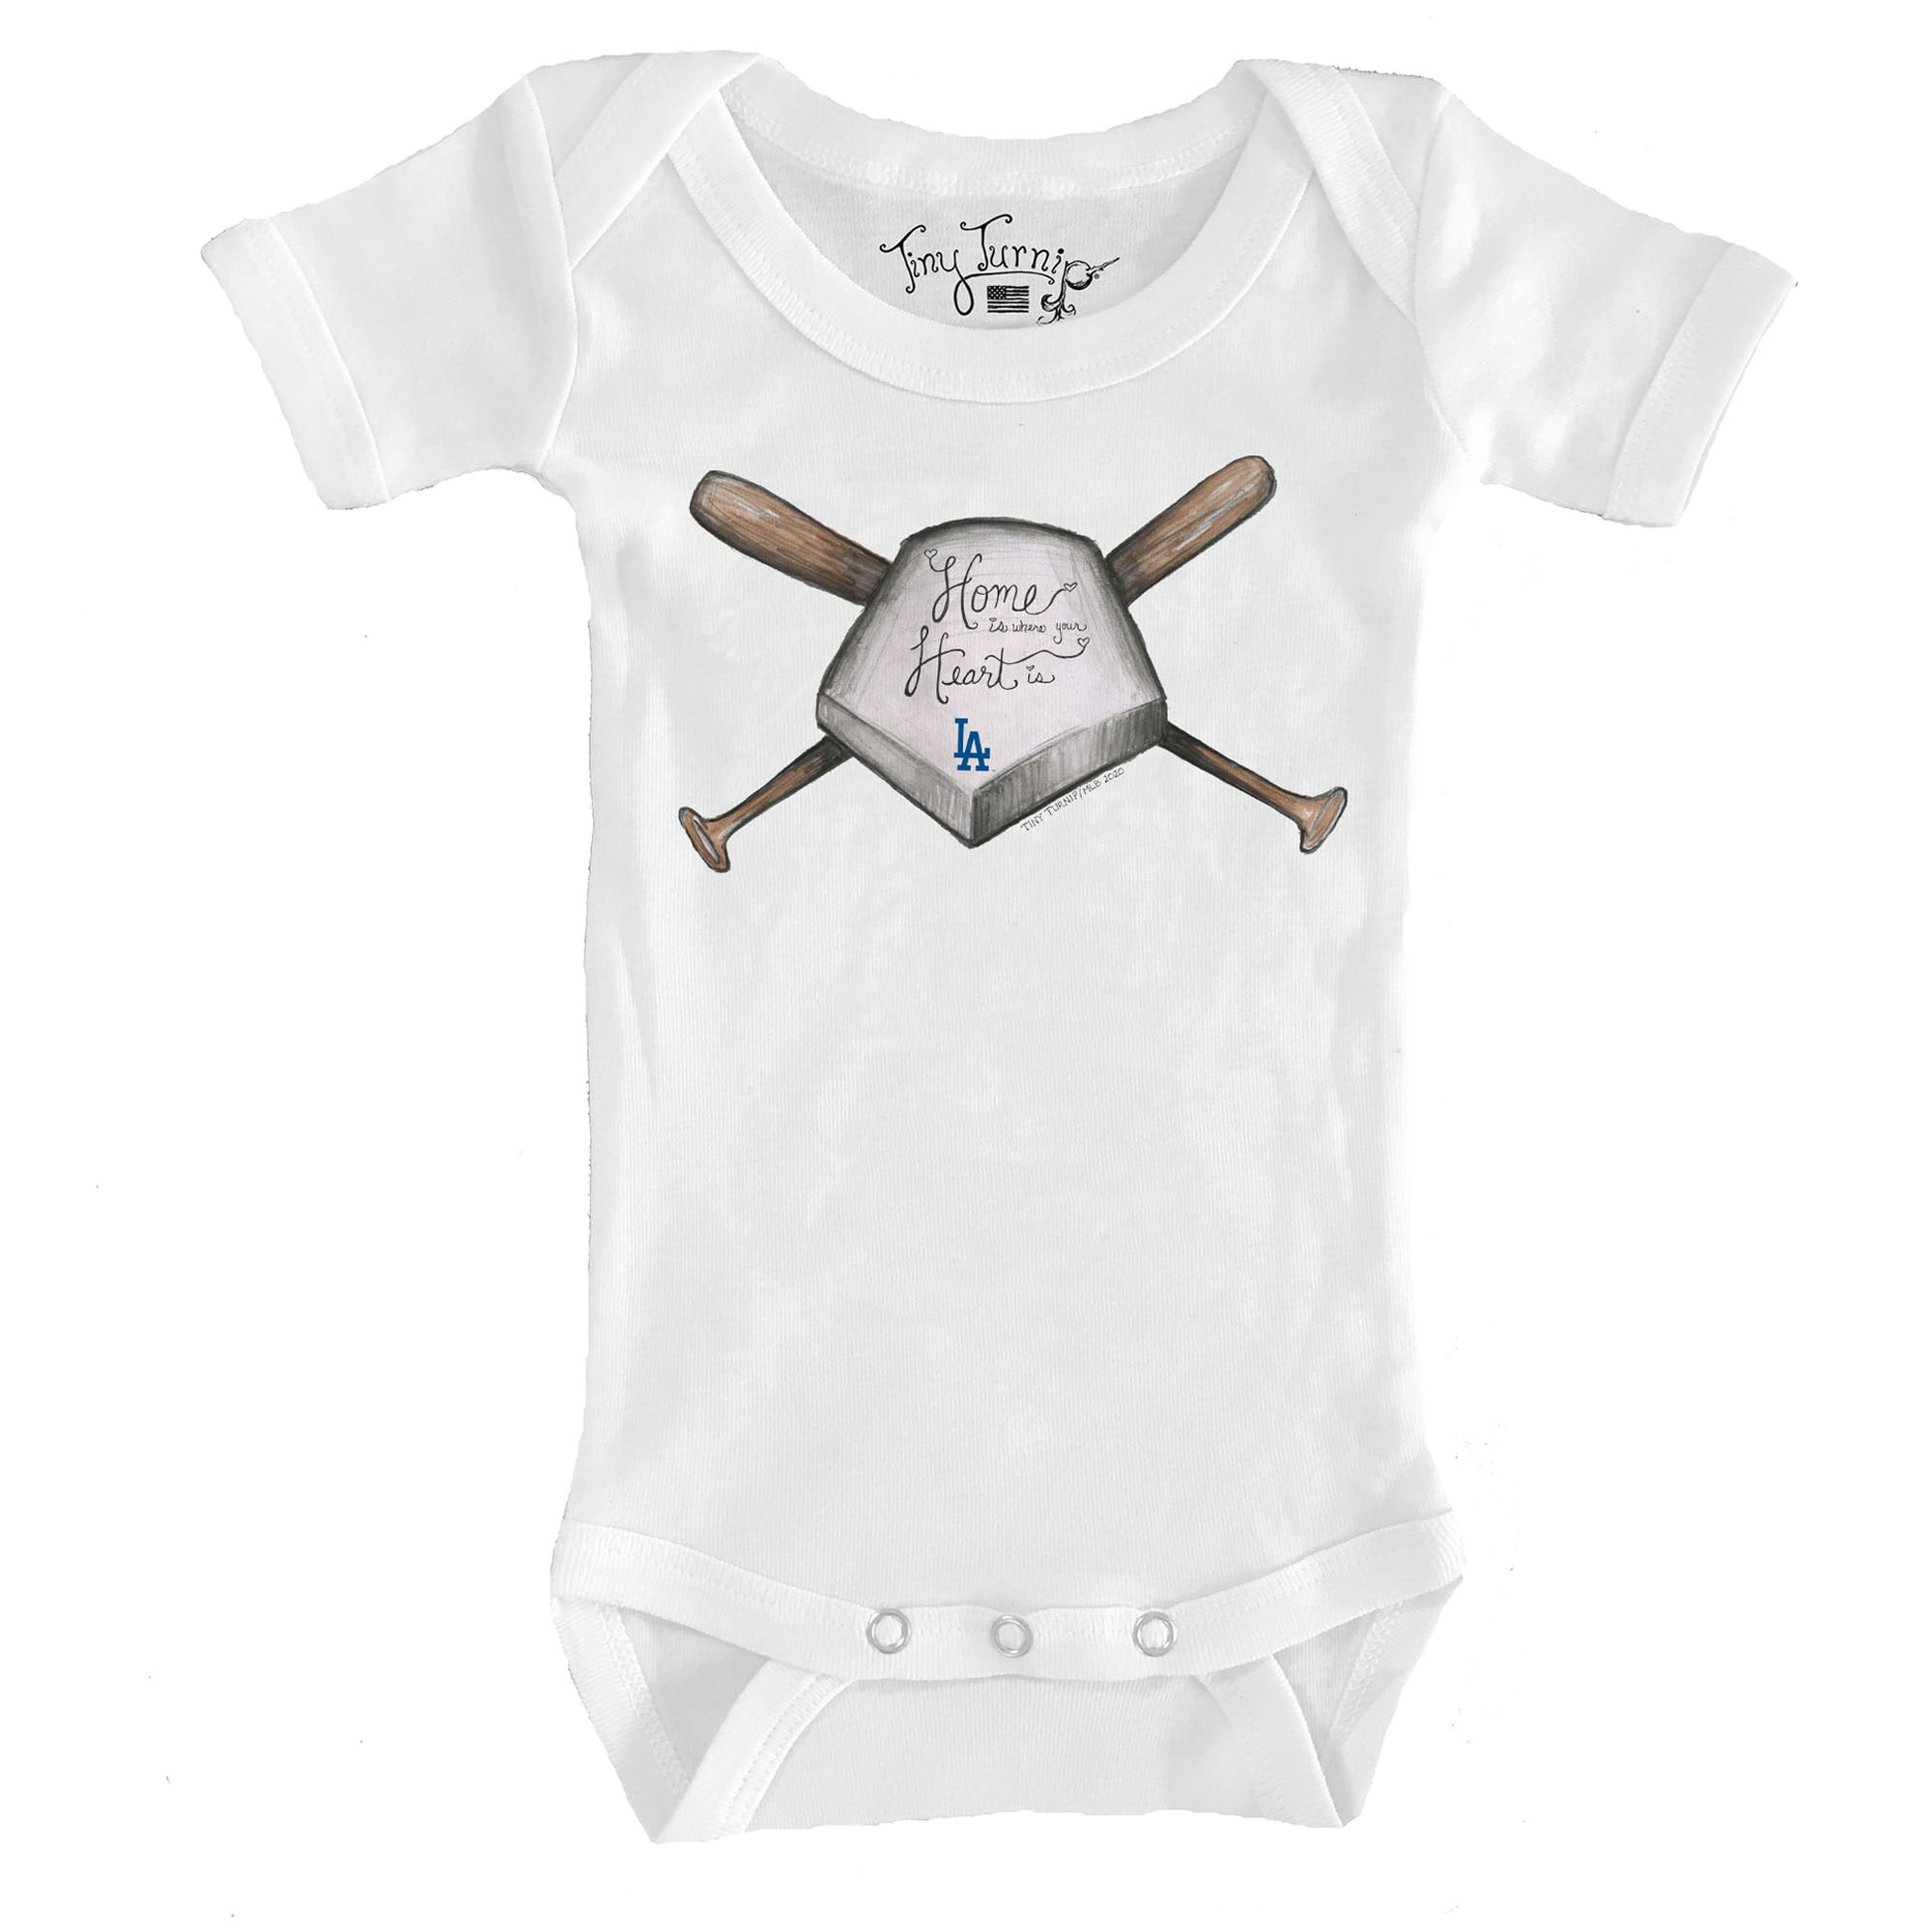 Los Angeles Dodgers Tiny Turnip Infant Home Is Where Your Heart Is Bodysuit - White